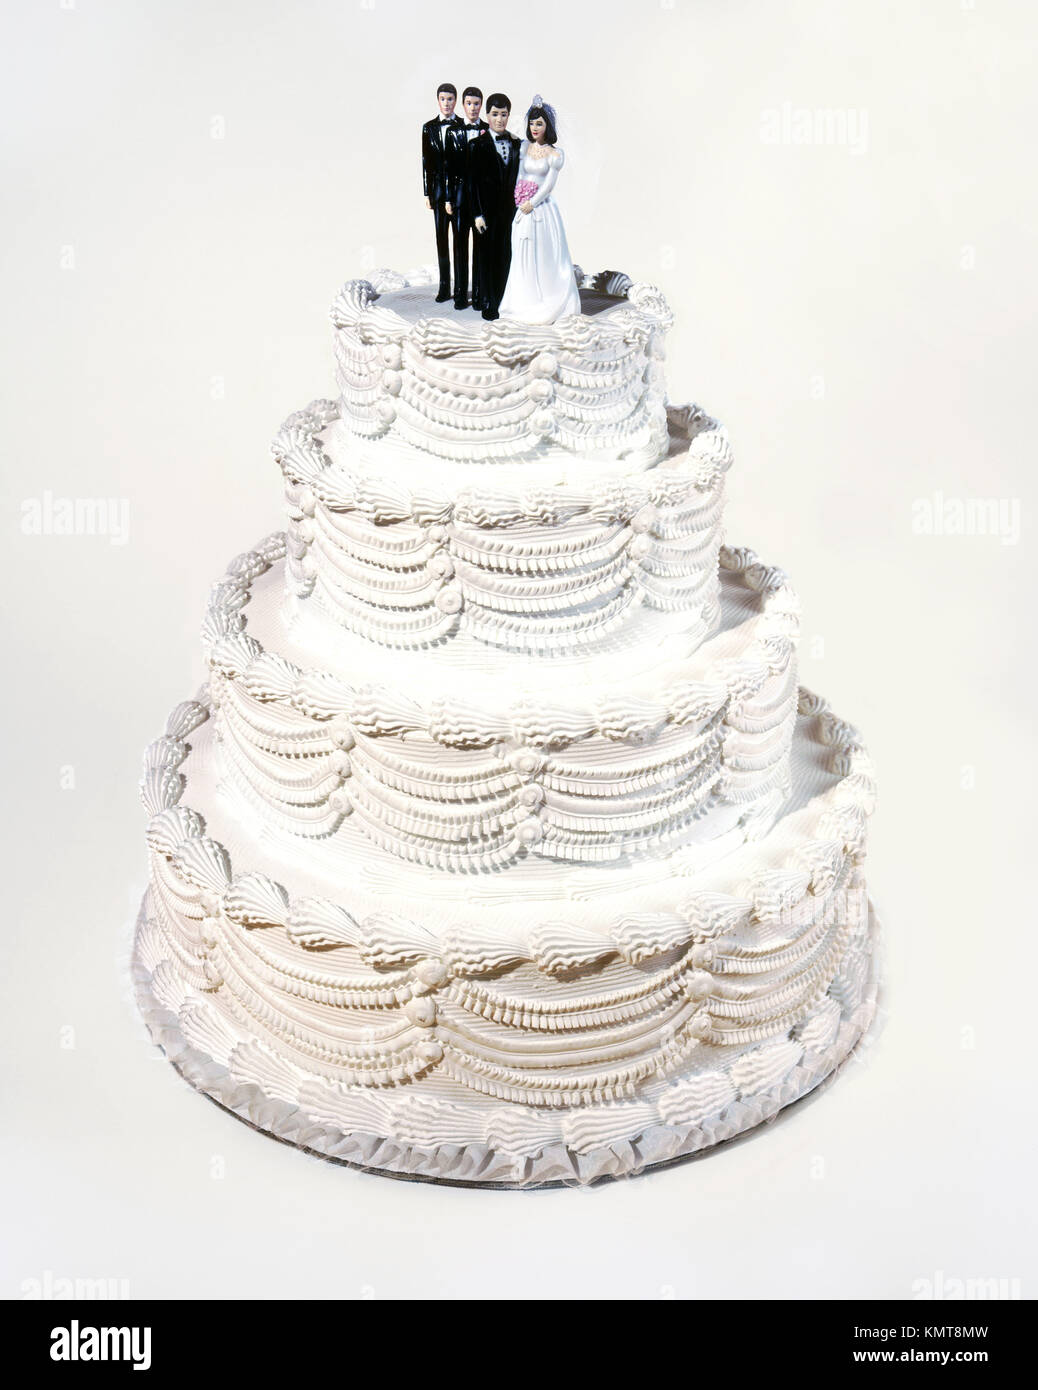 Wedding Cake With Couple And Two Best Men Stock Photo 167720137 Alamy